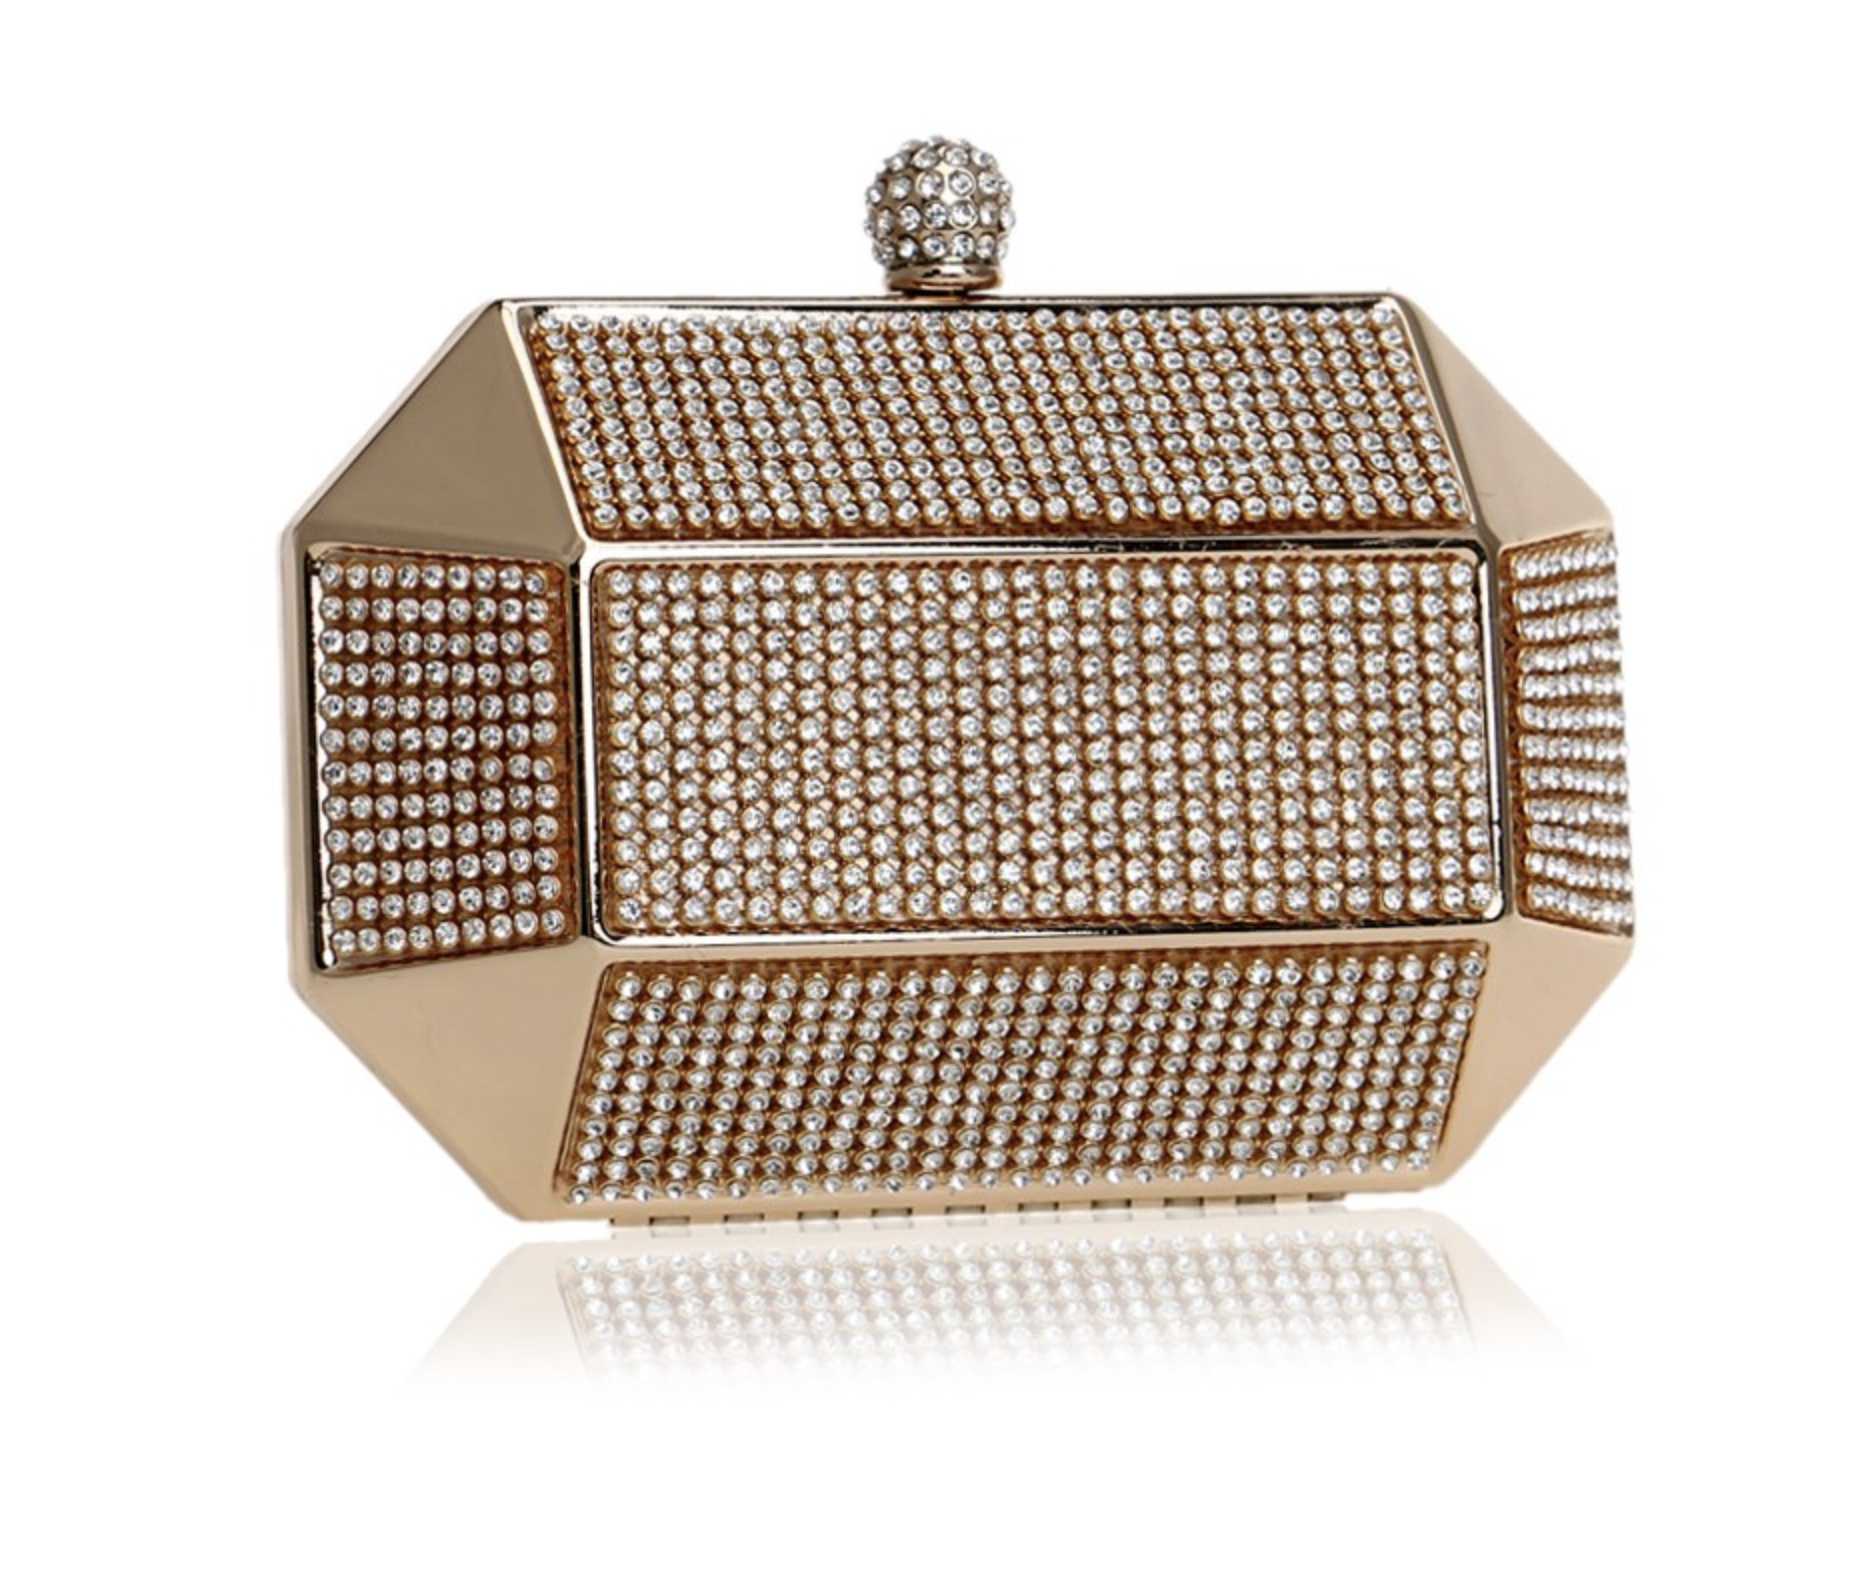 Glazori Prism Diamond Clutch - Gold